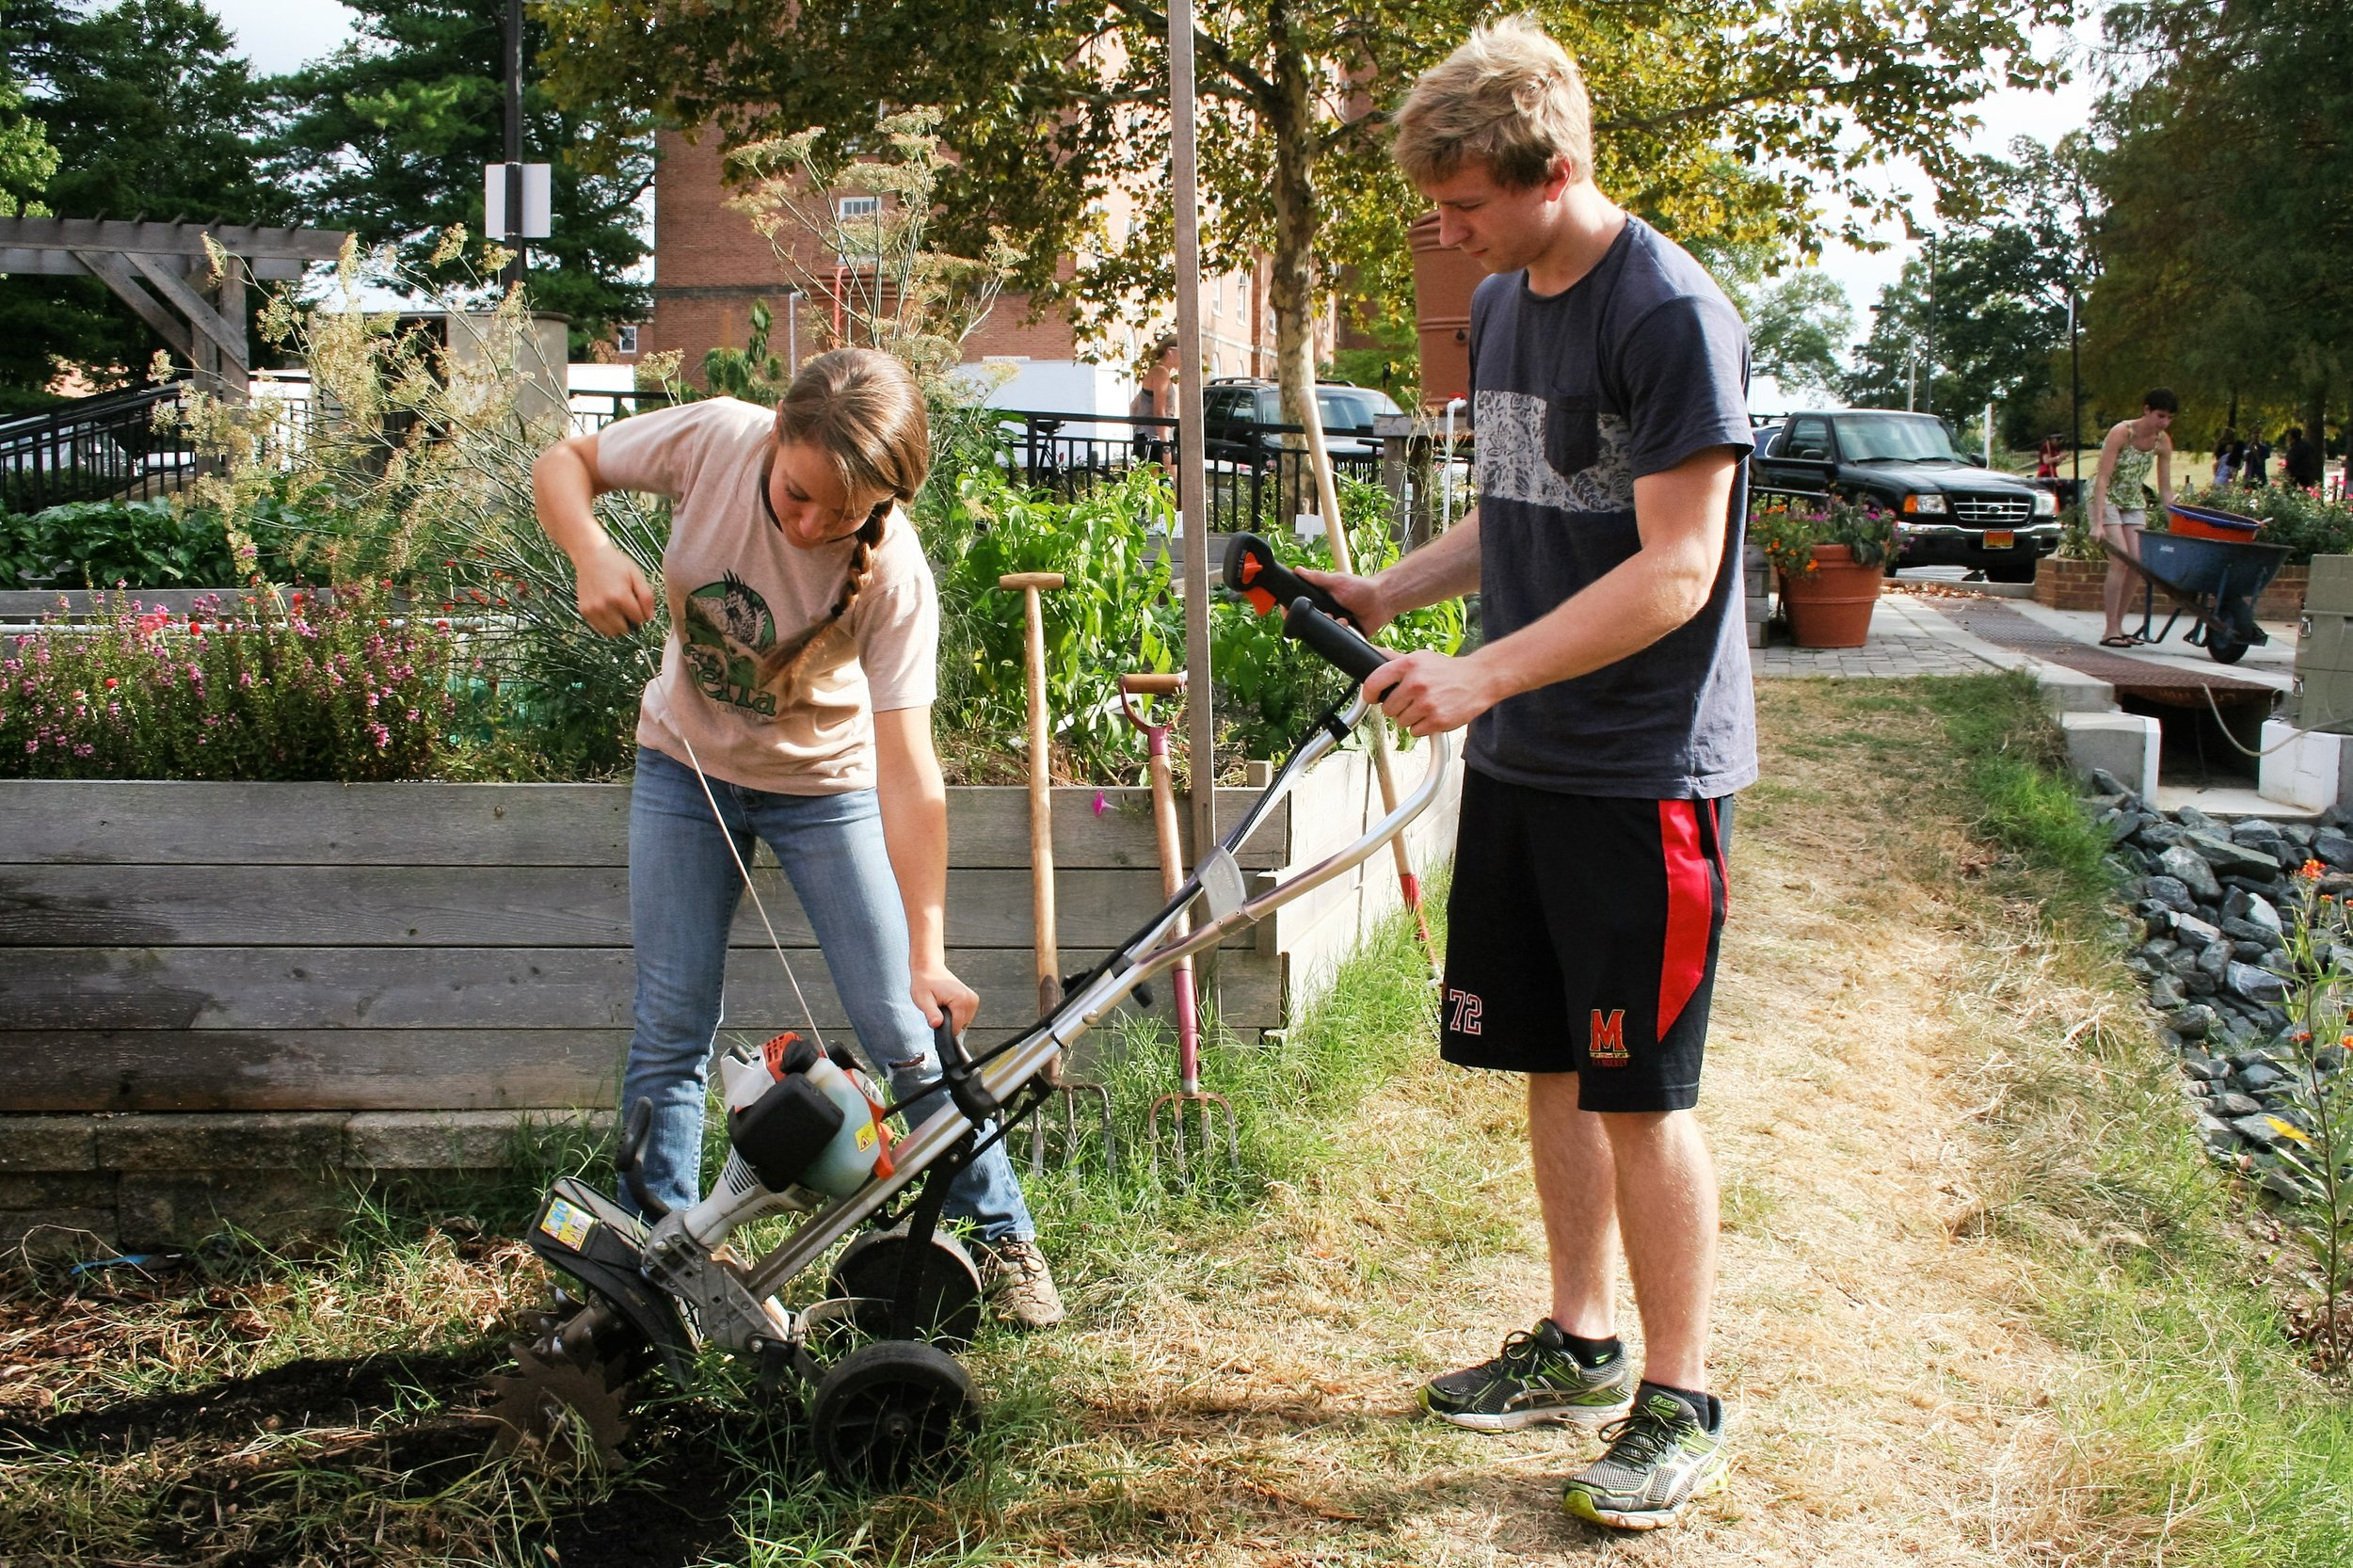 Meredith Epstein works with volunteer Philip Schwartz, a sophomore environmental and science technology major to start the engine of a plow to turn the fresh compost on Sept. 28, 2015.